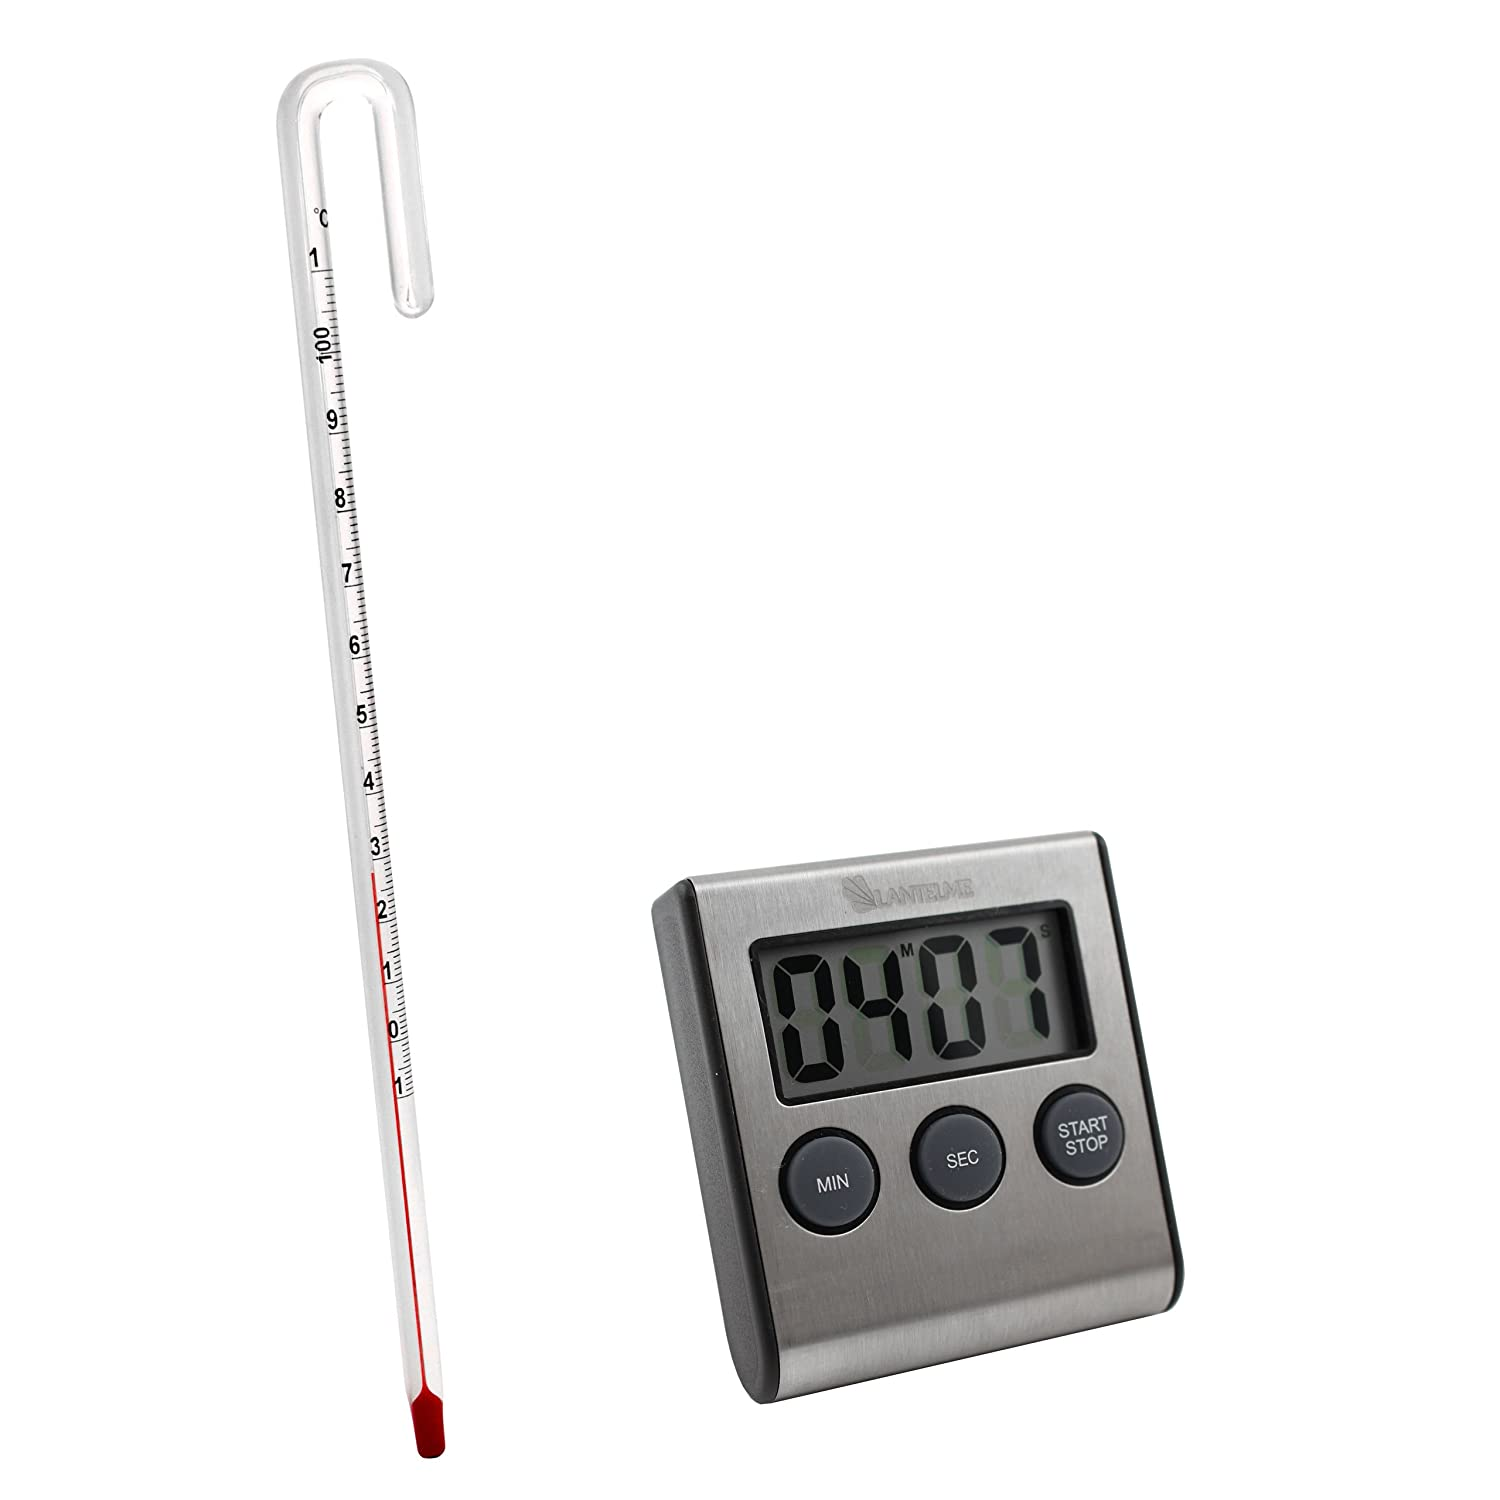 Lantelme 5950analogue tea thermometer and stainless steel digital timer set for perfect tea